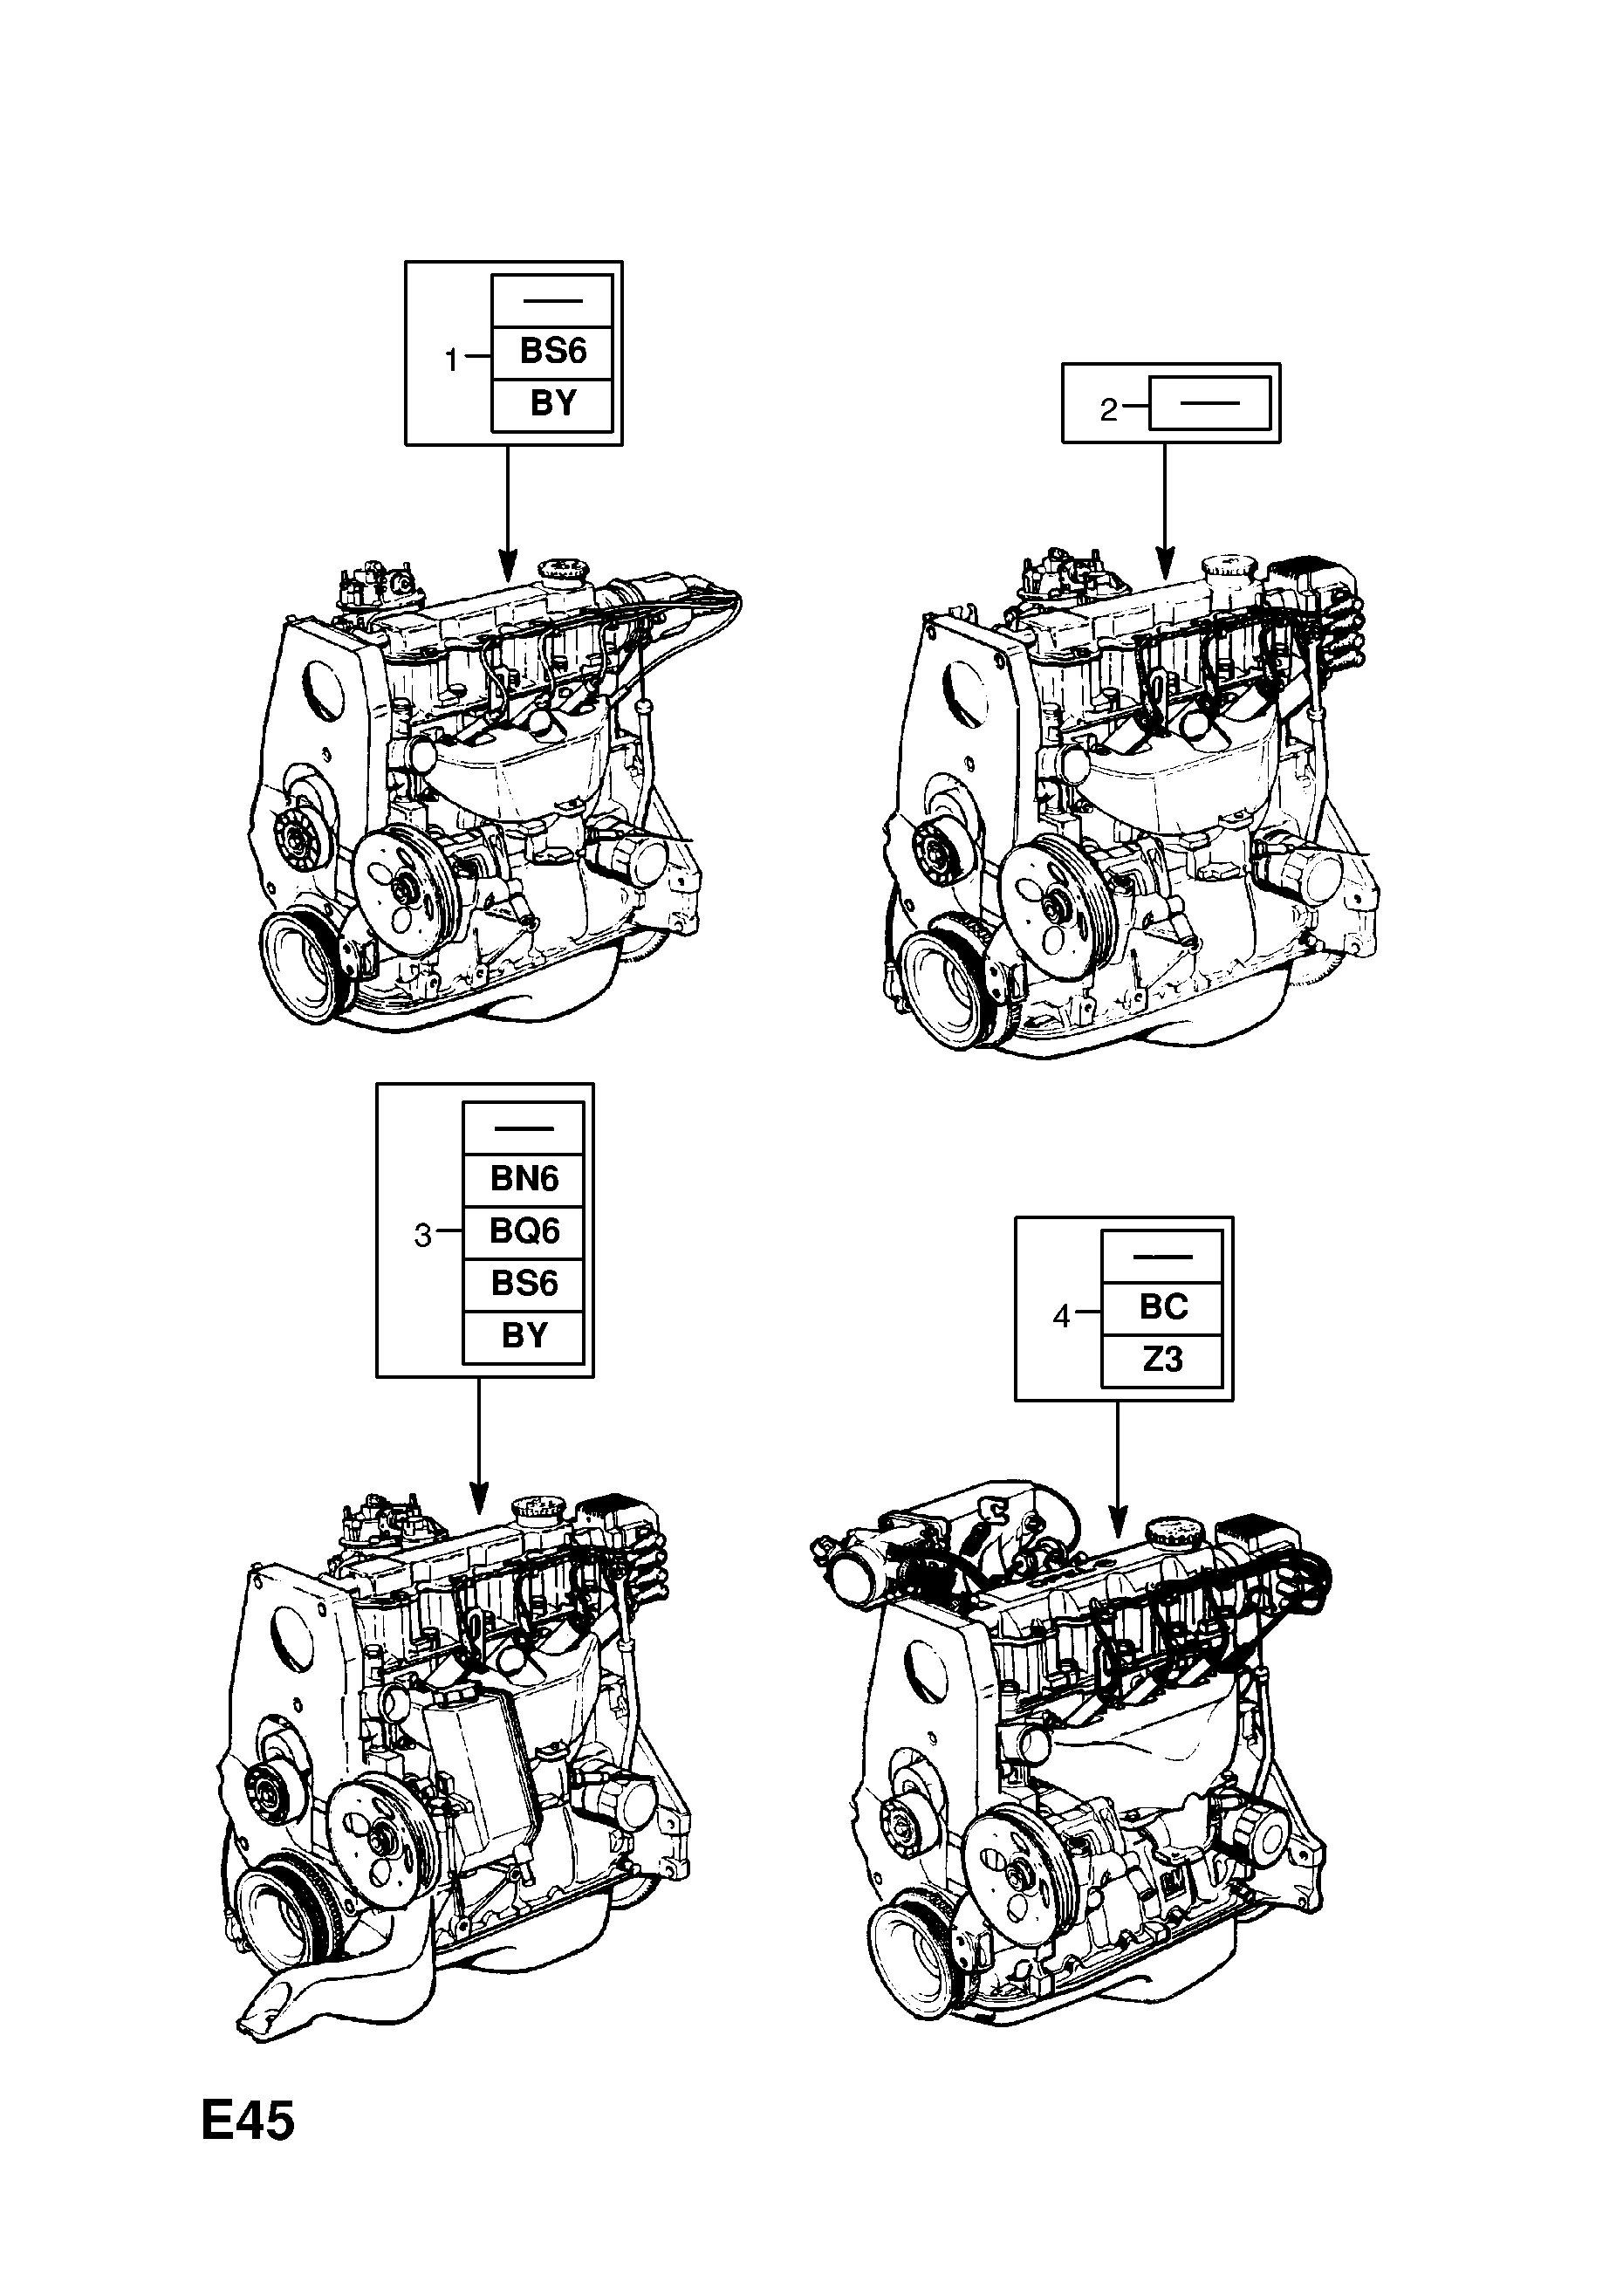 engine assembly 16nzr l73 with manual transmission opel astra f rh opel 7zap com opel astra f manual english opel astra f manual service